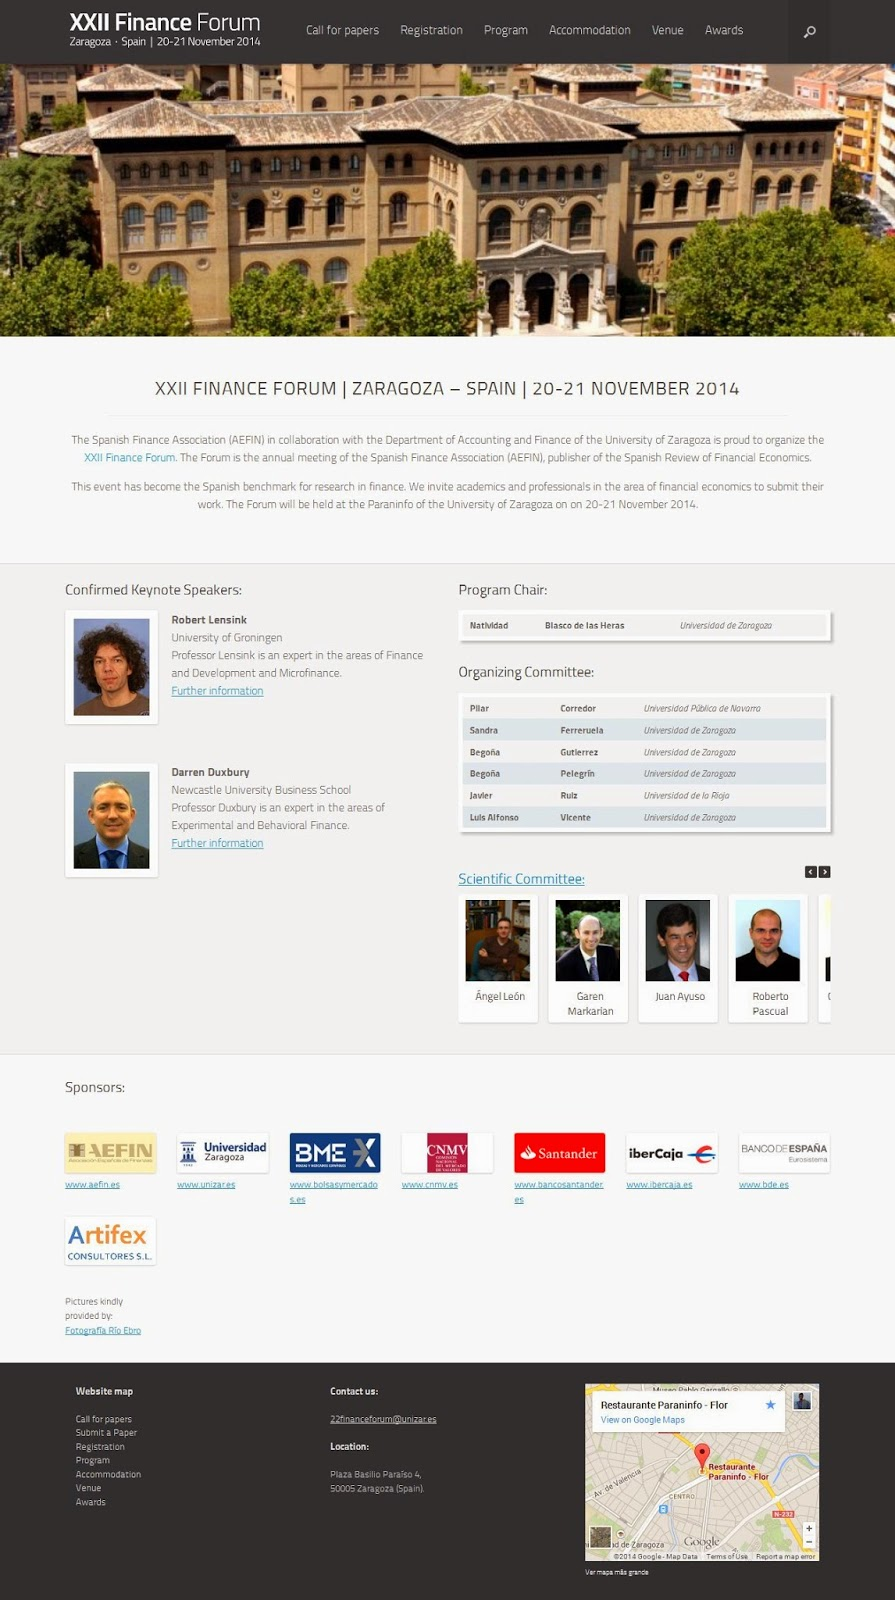 http://22financeforum.unizar.es/